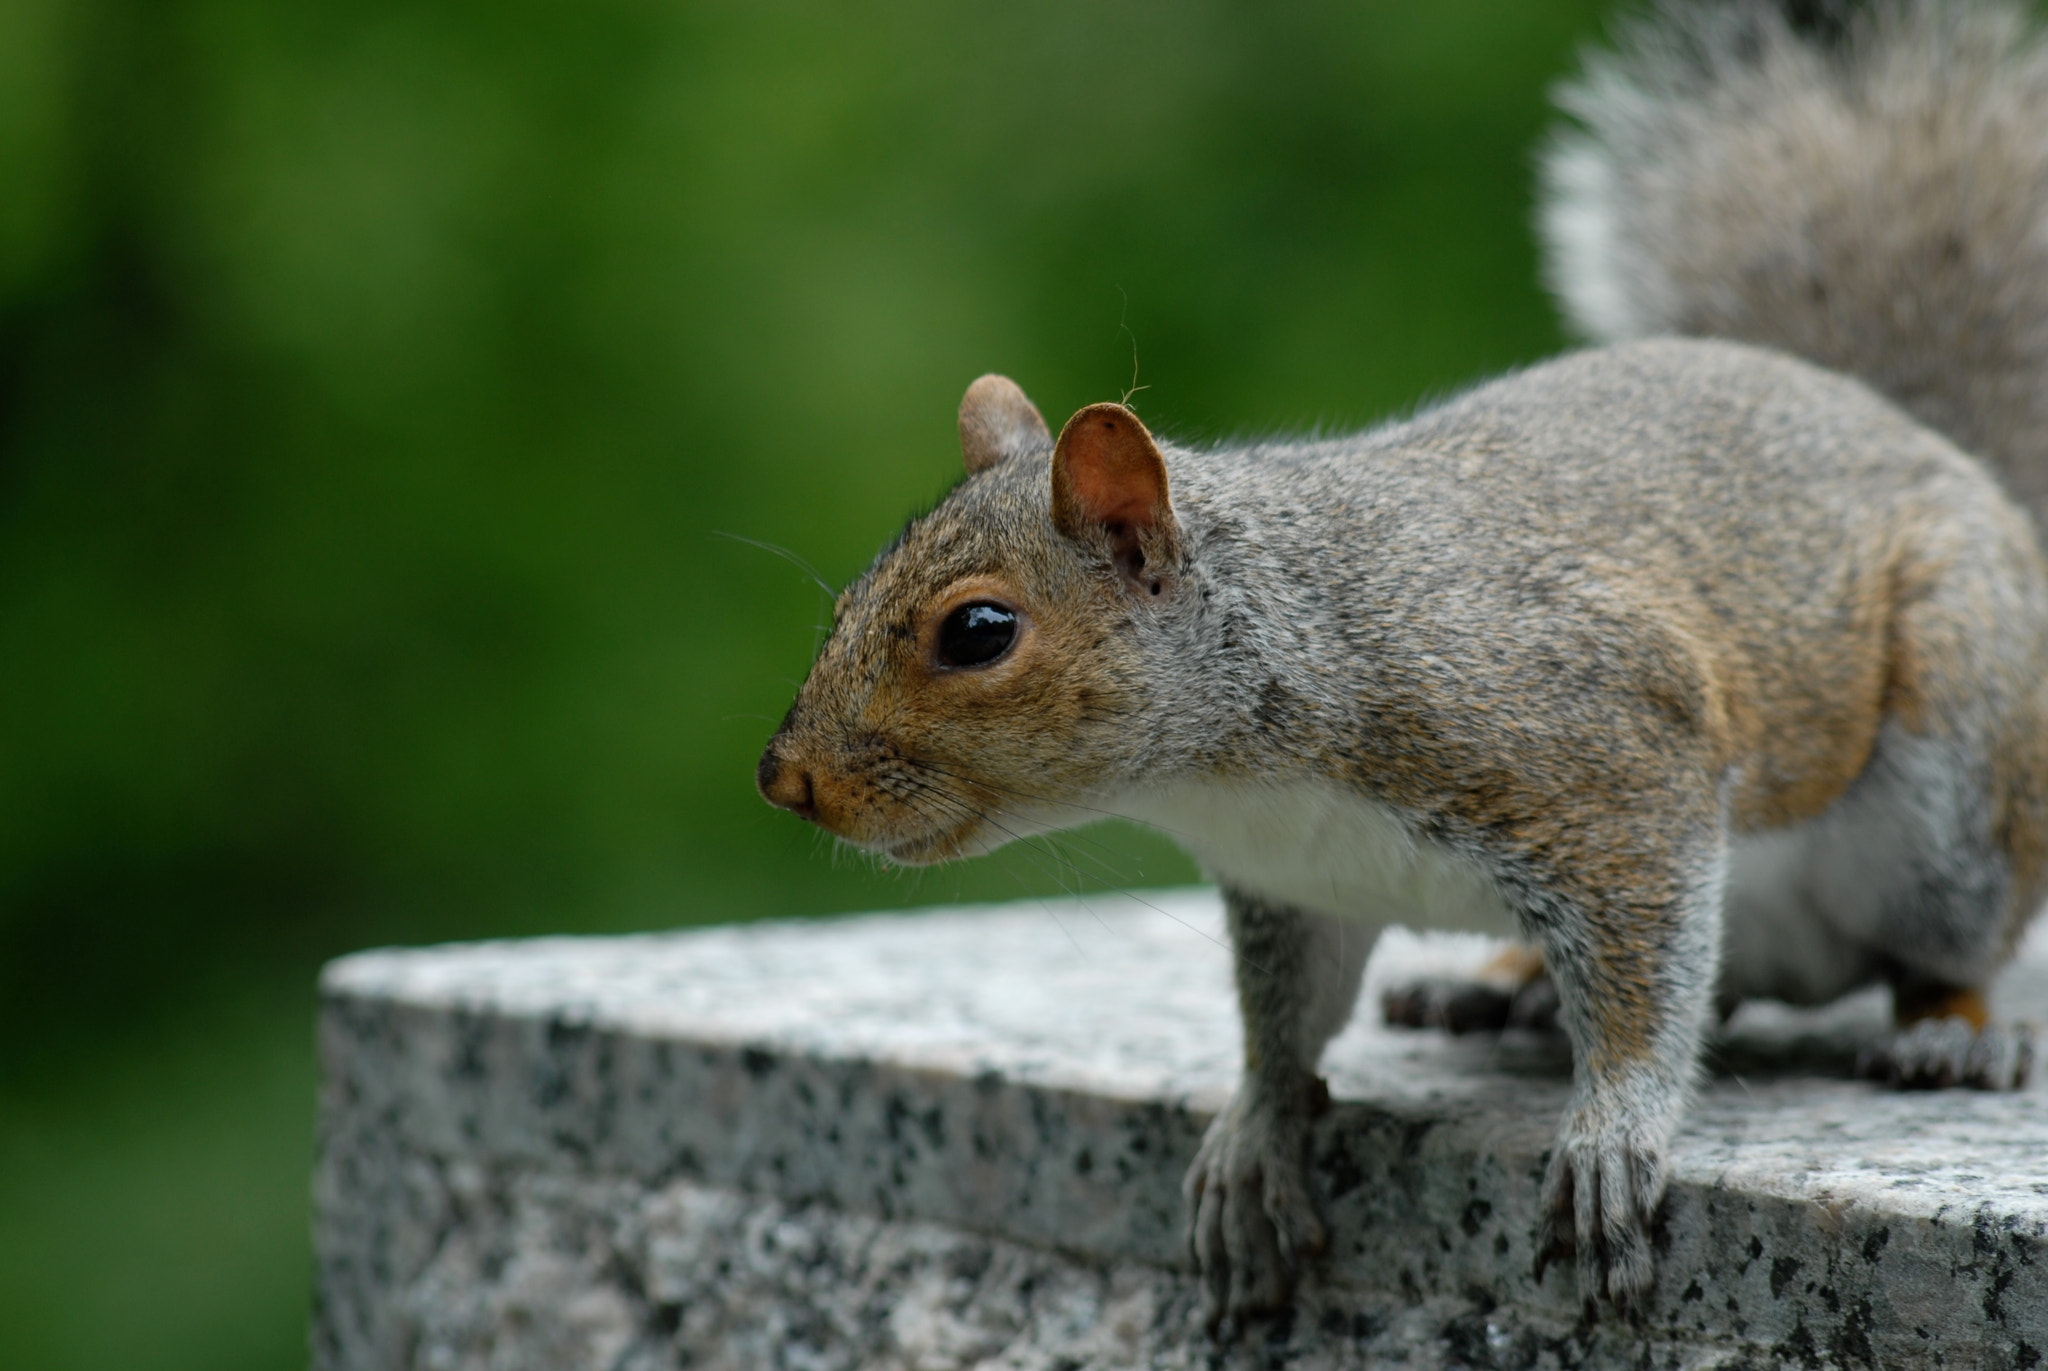 Photograph The posing squirrel by Gilles Royer on 500px